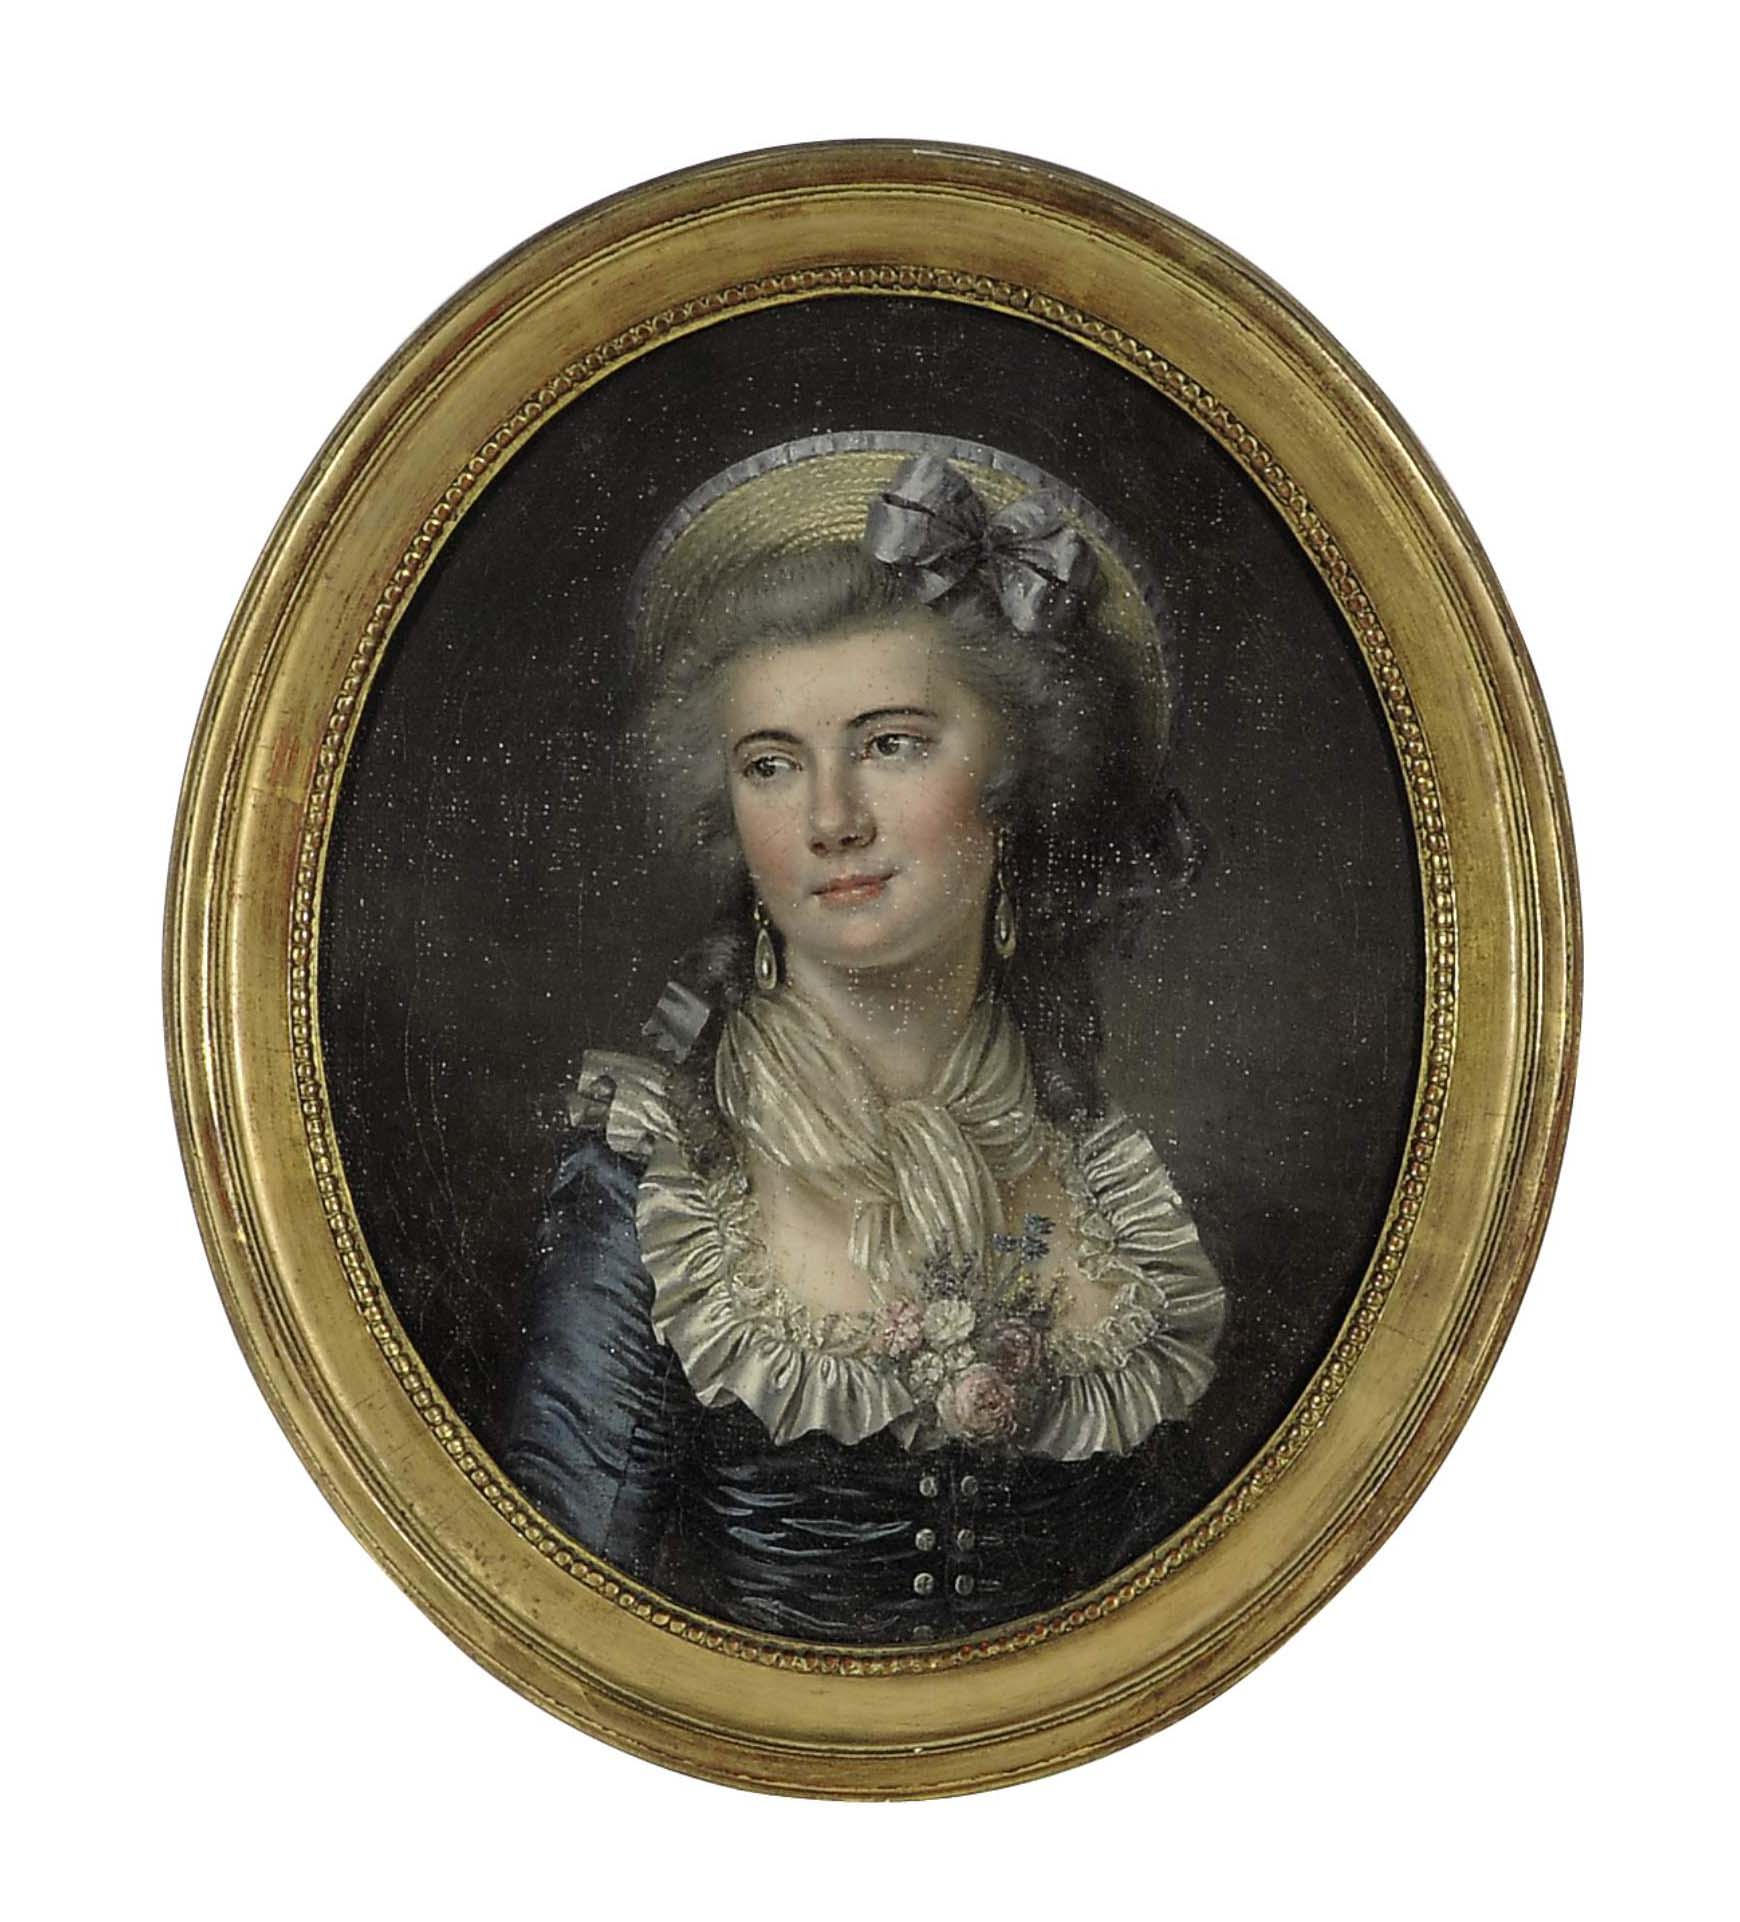 Portrait of a lady wearing a blue dress and a hat